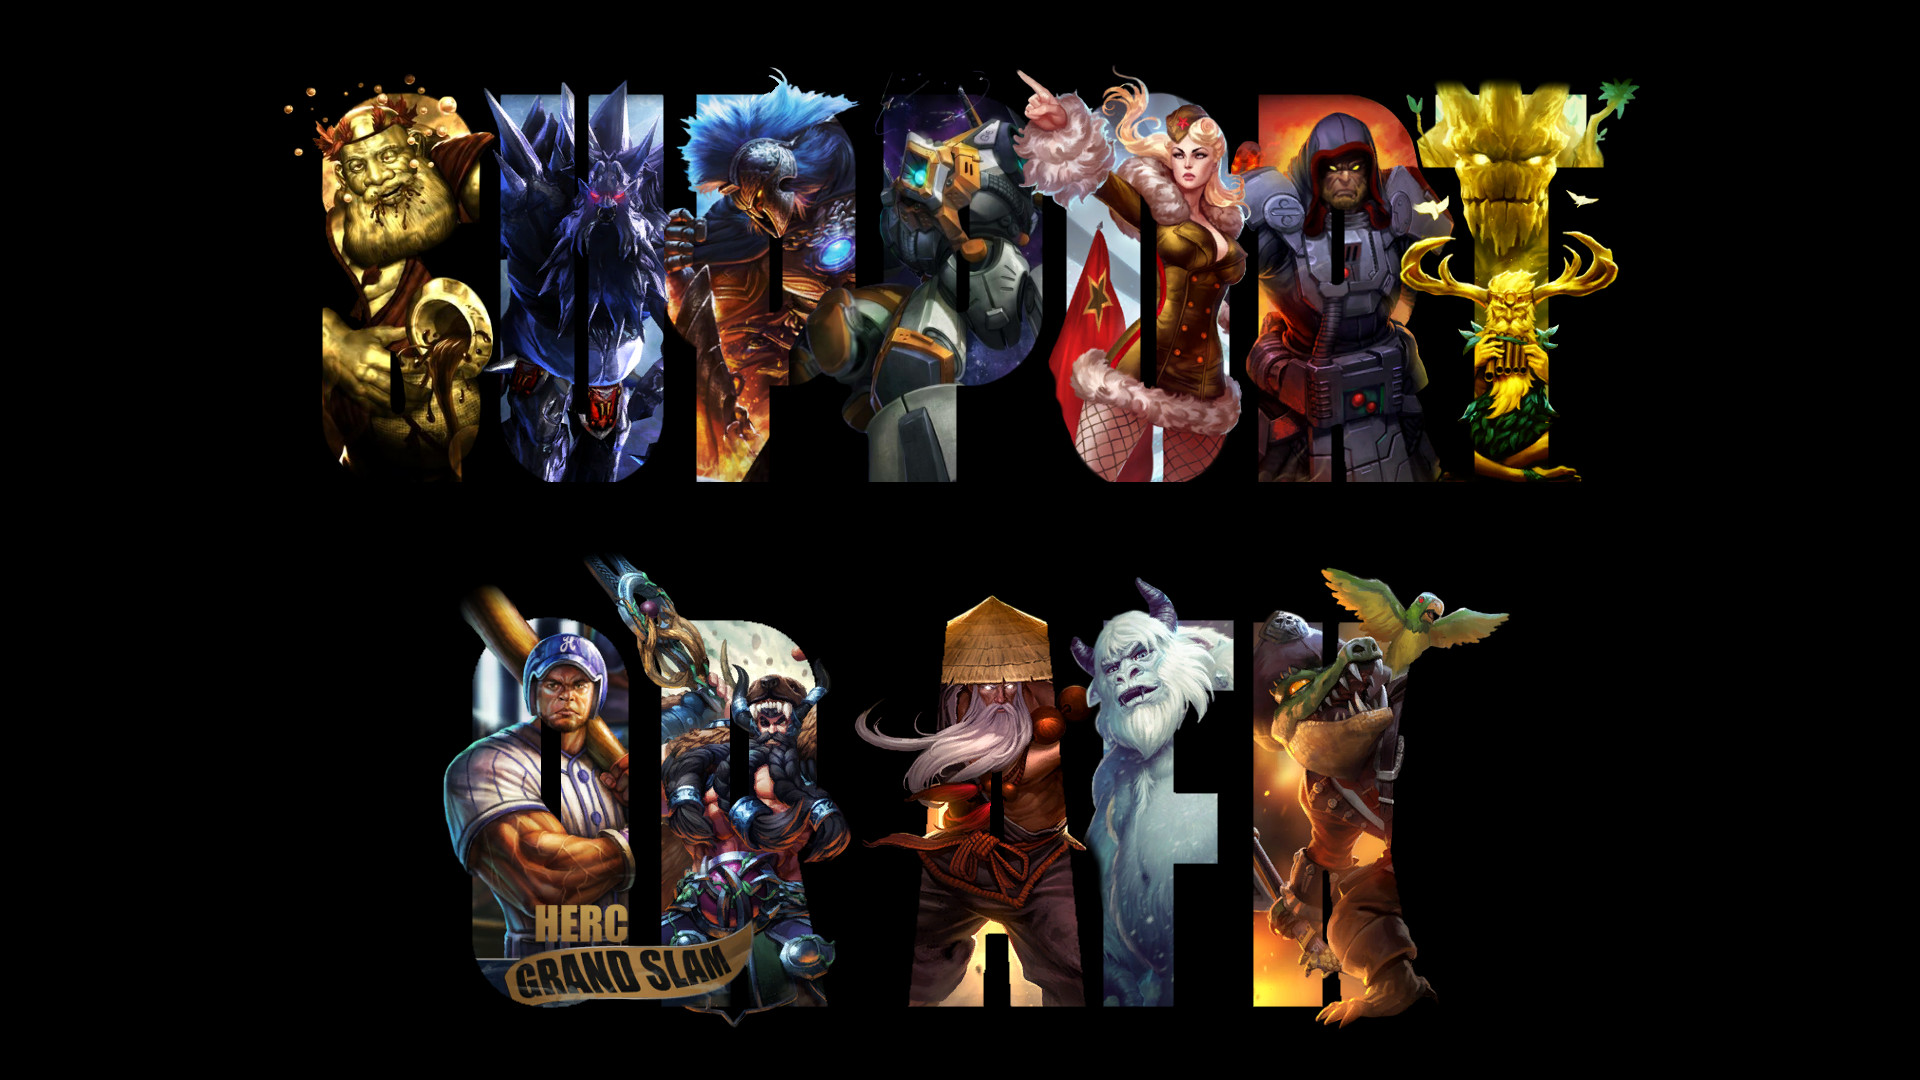 … Update on wallpaper of Smite supports by iMorallyGrey